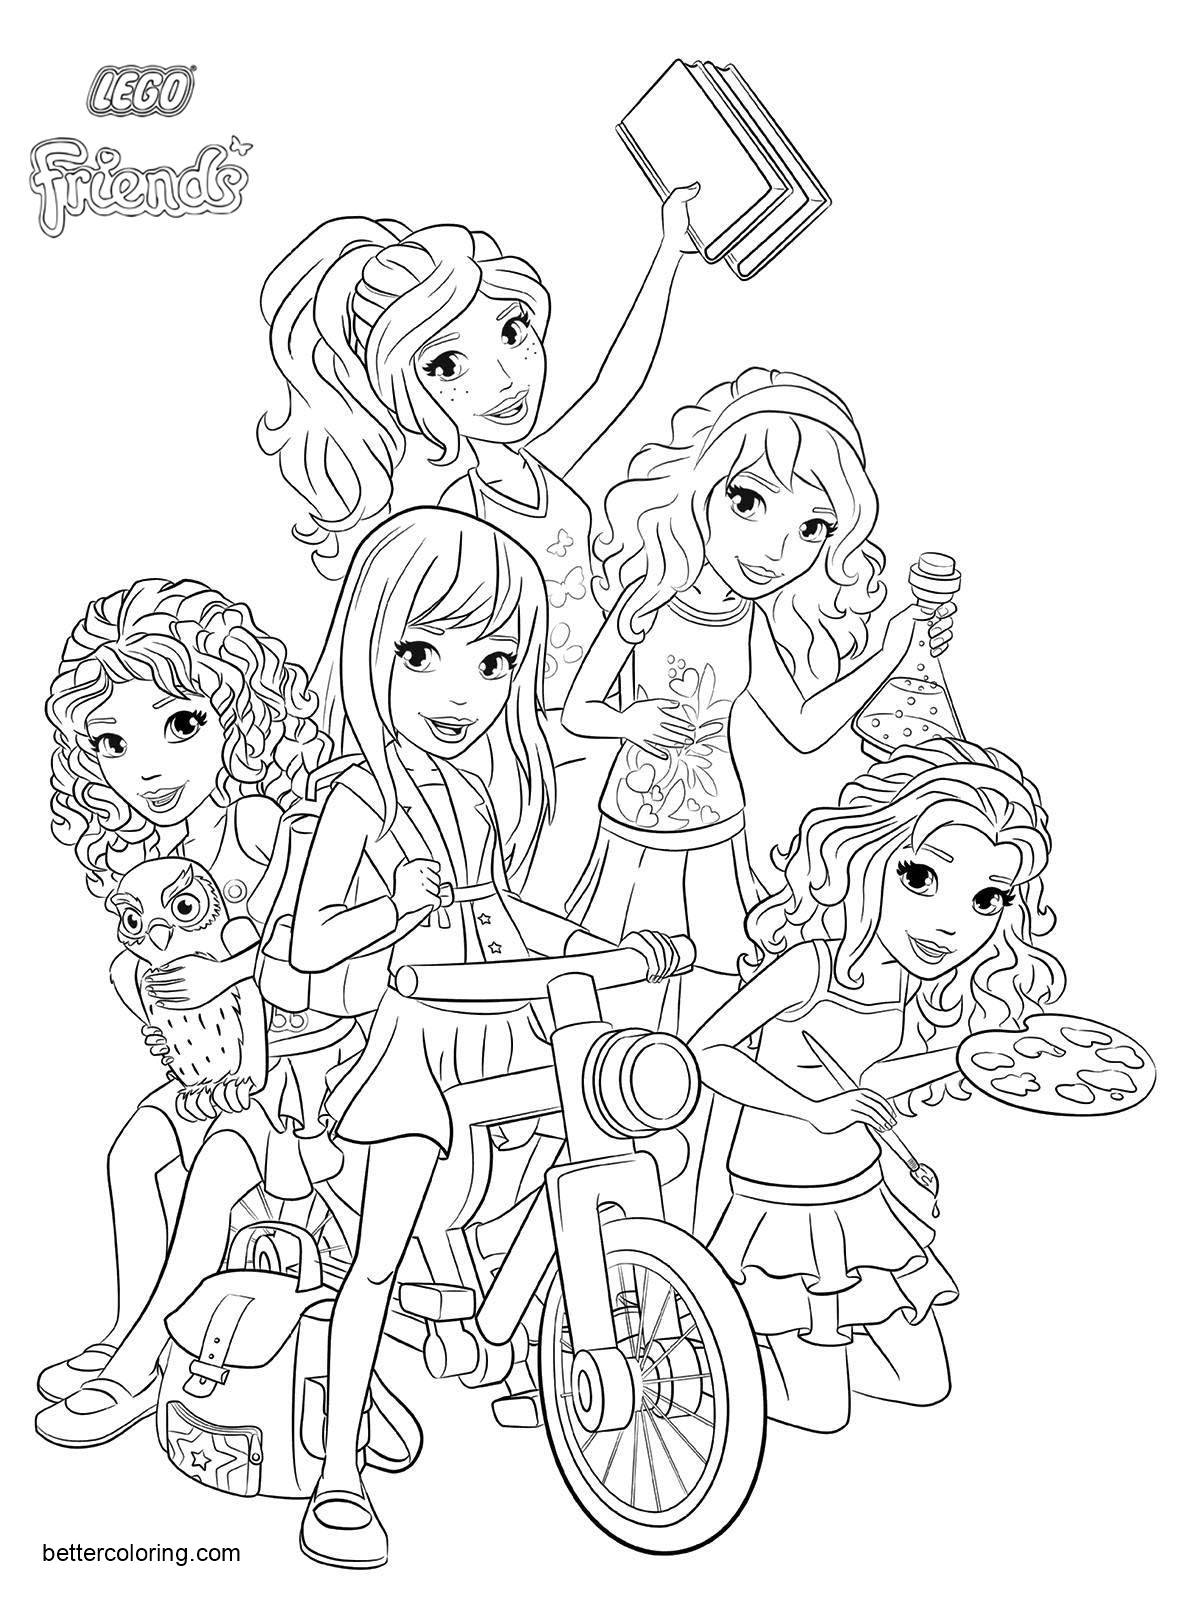 Free Characters from LEGO Friends Coloring Pages printable